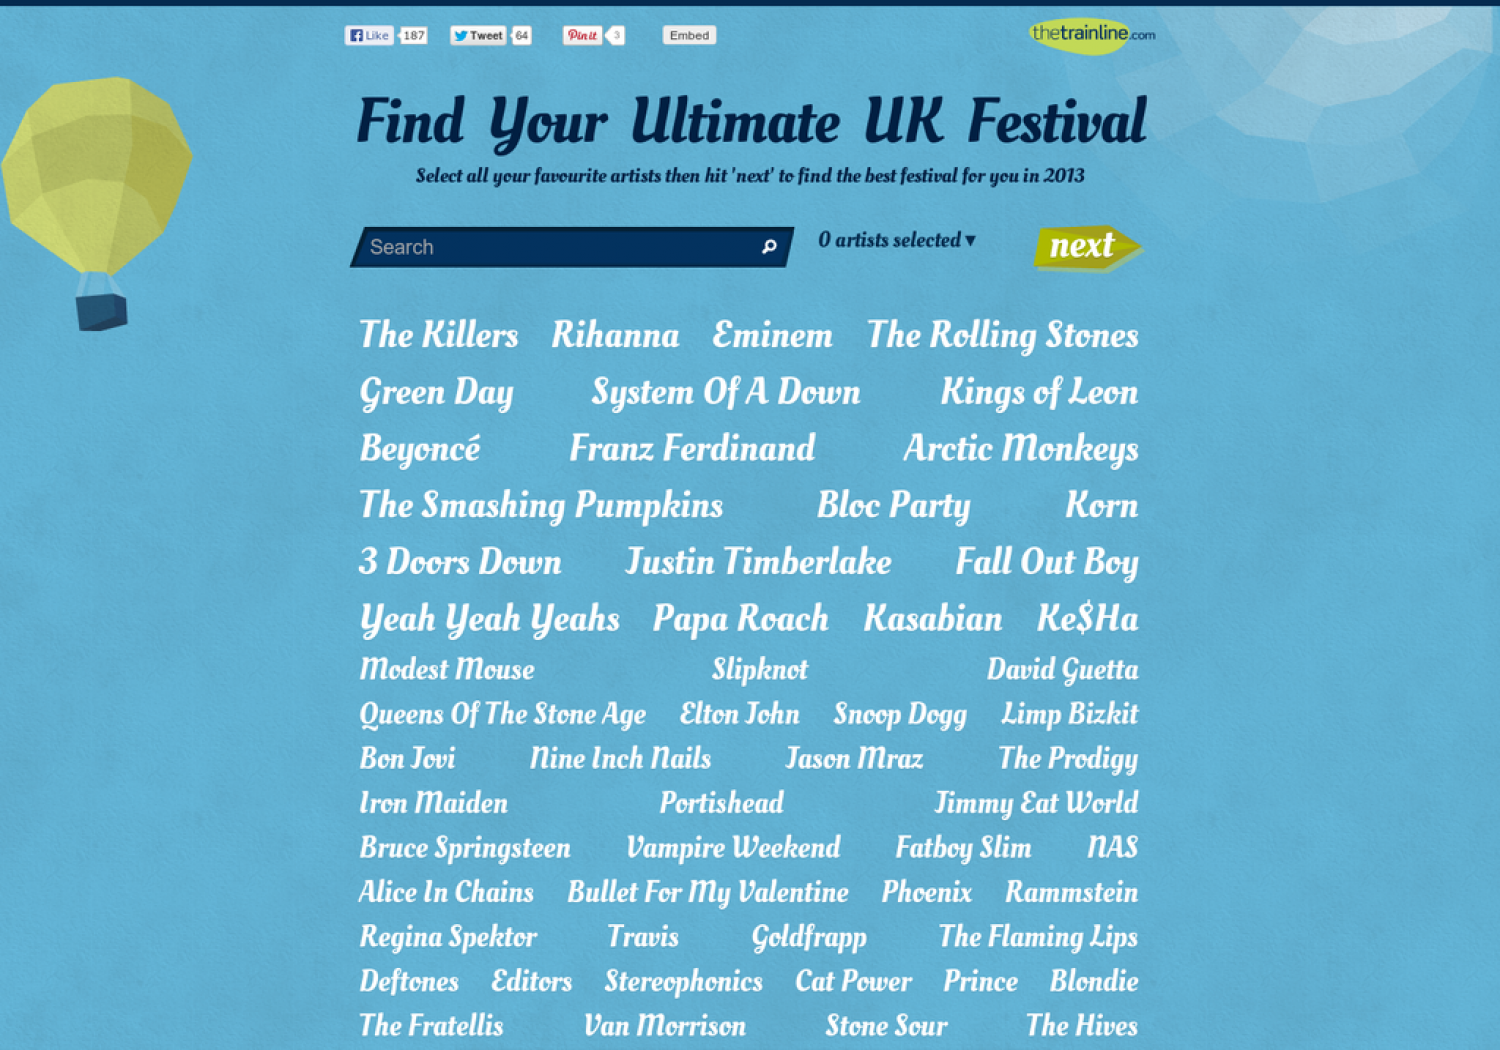 Find Your Ultimate UK Festival Infographic